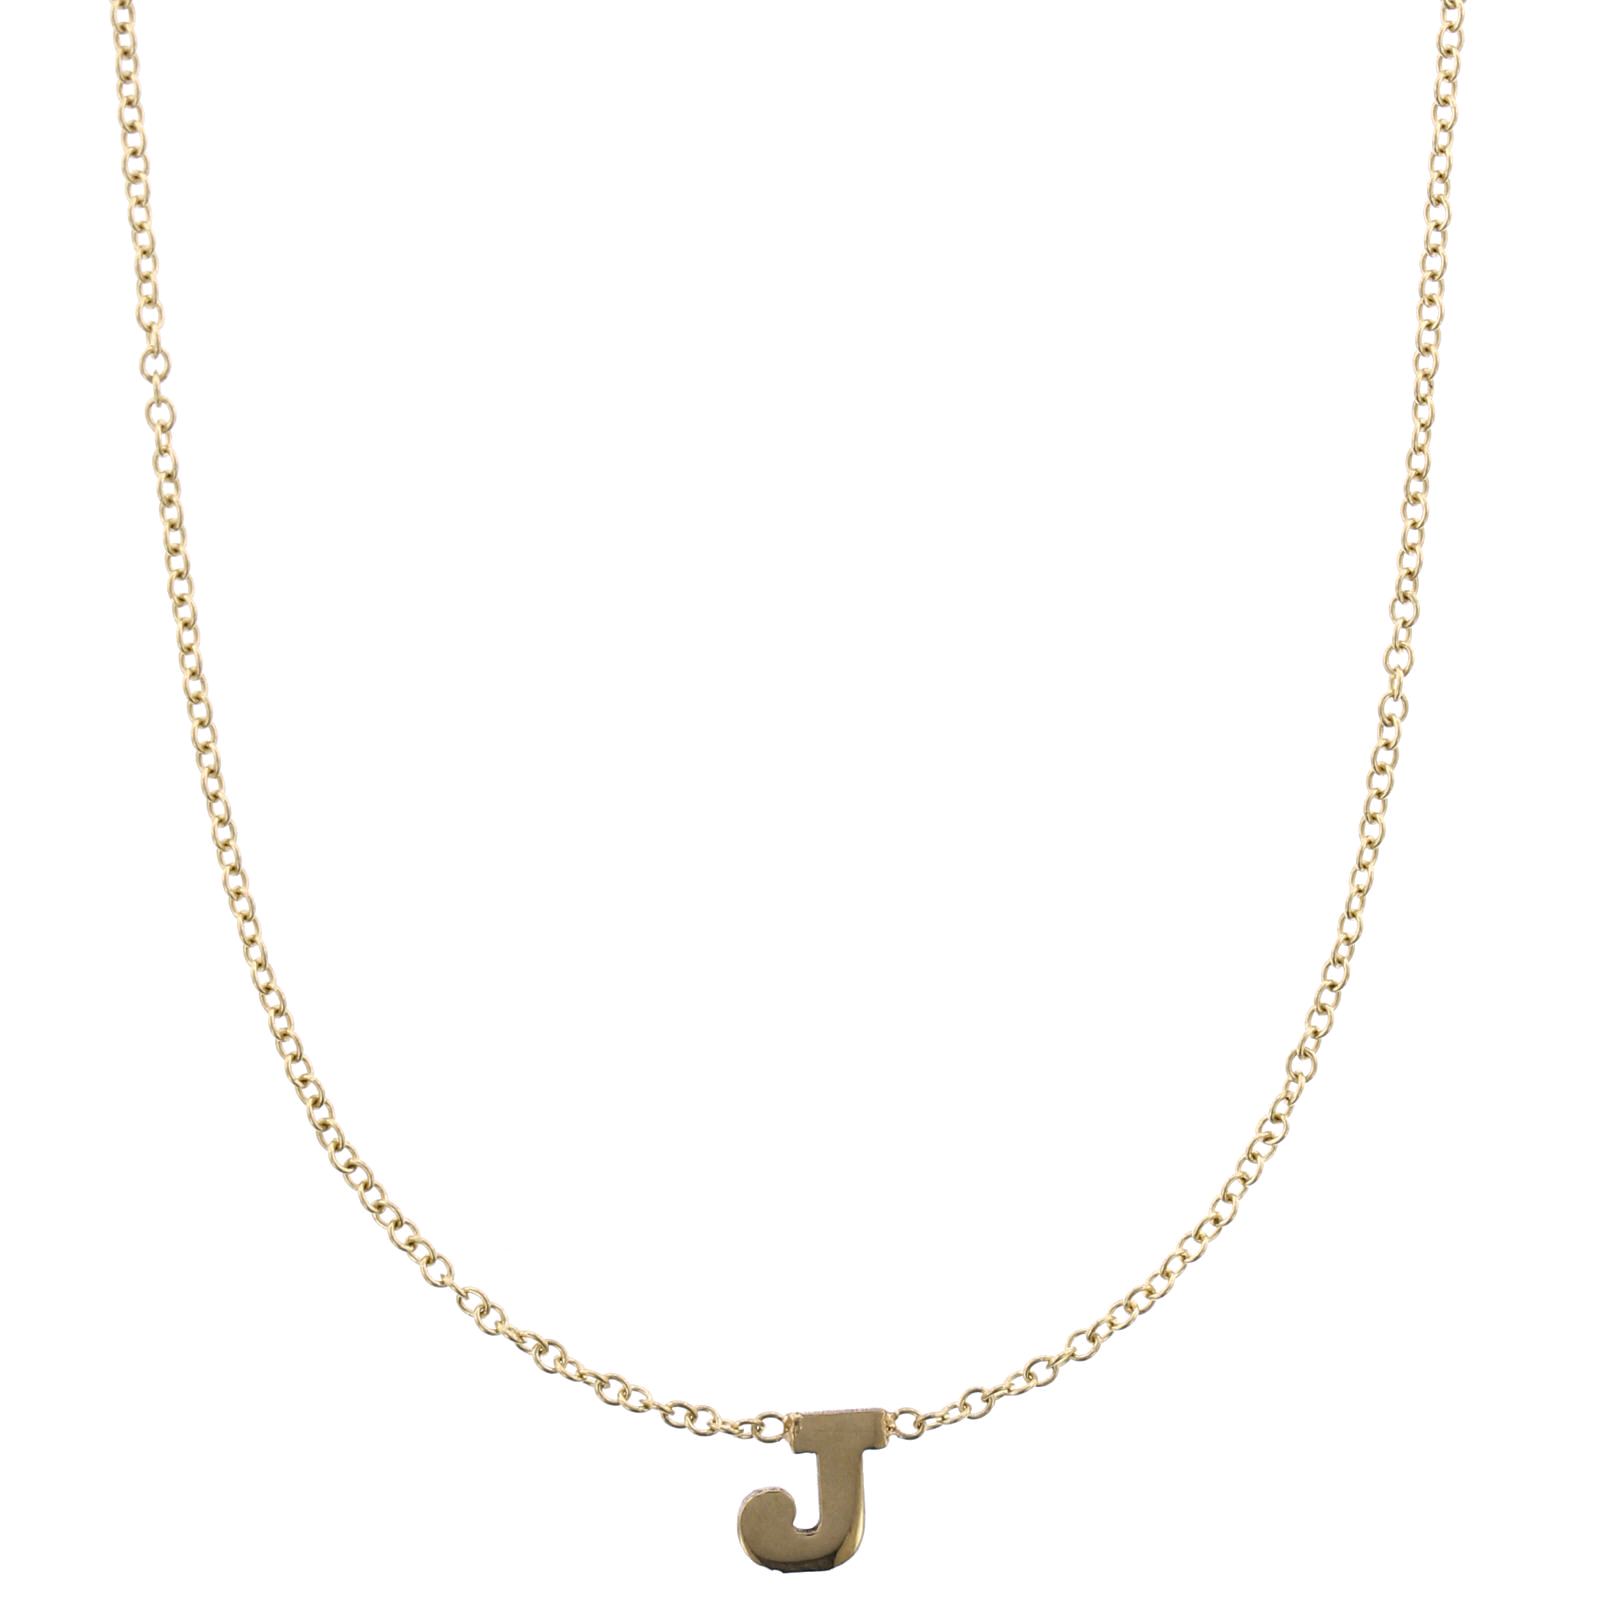 14K Yellow Gold Initial Necklace